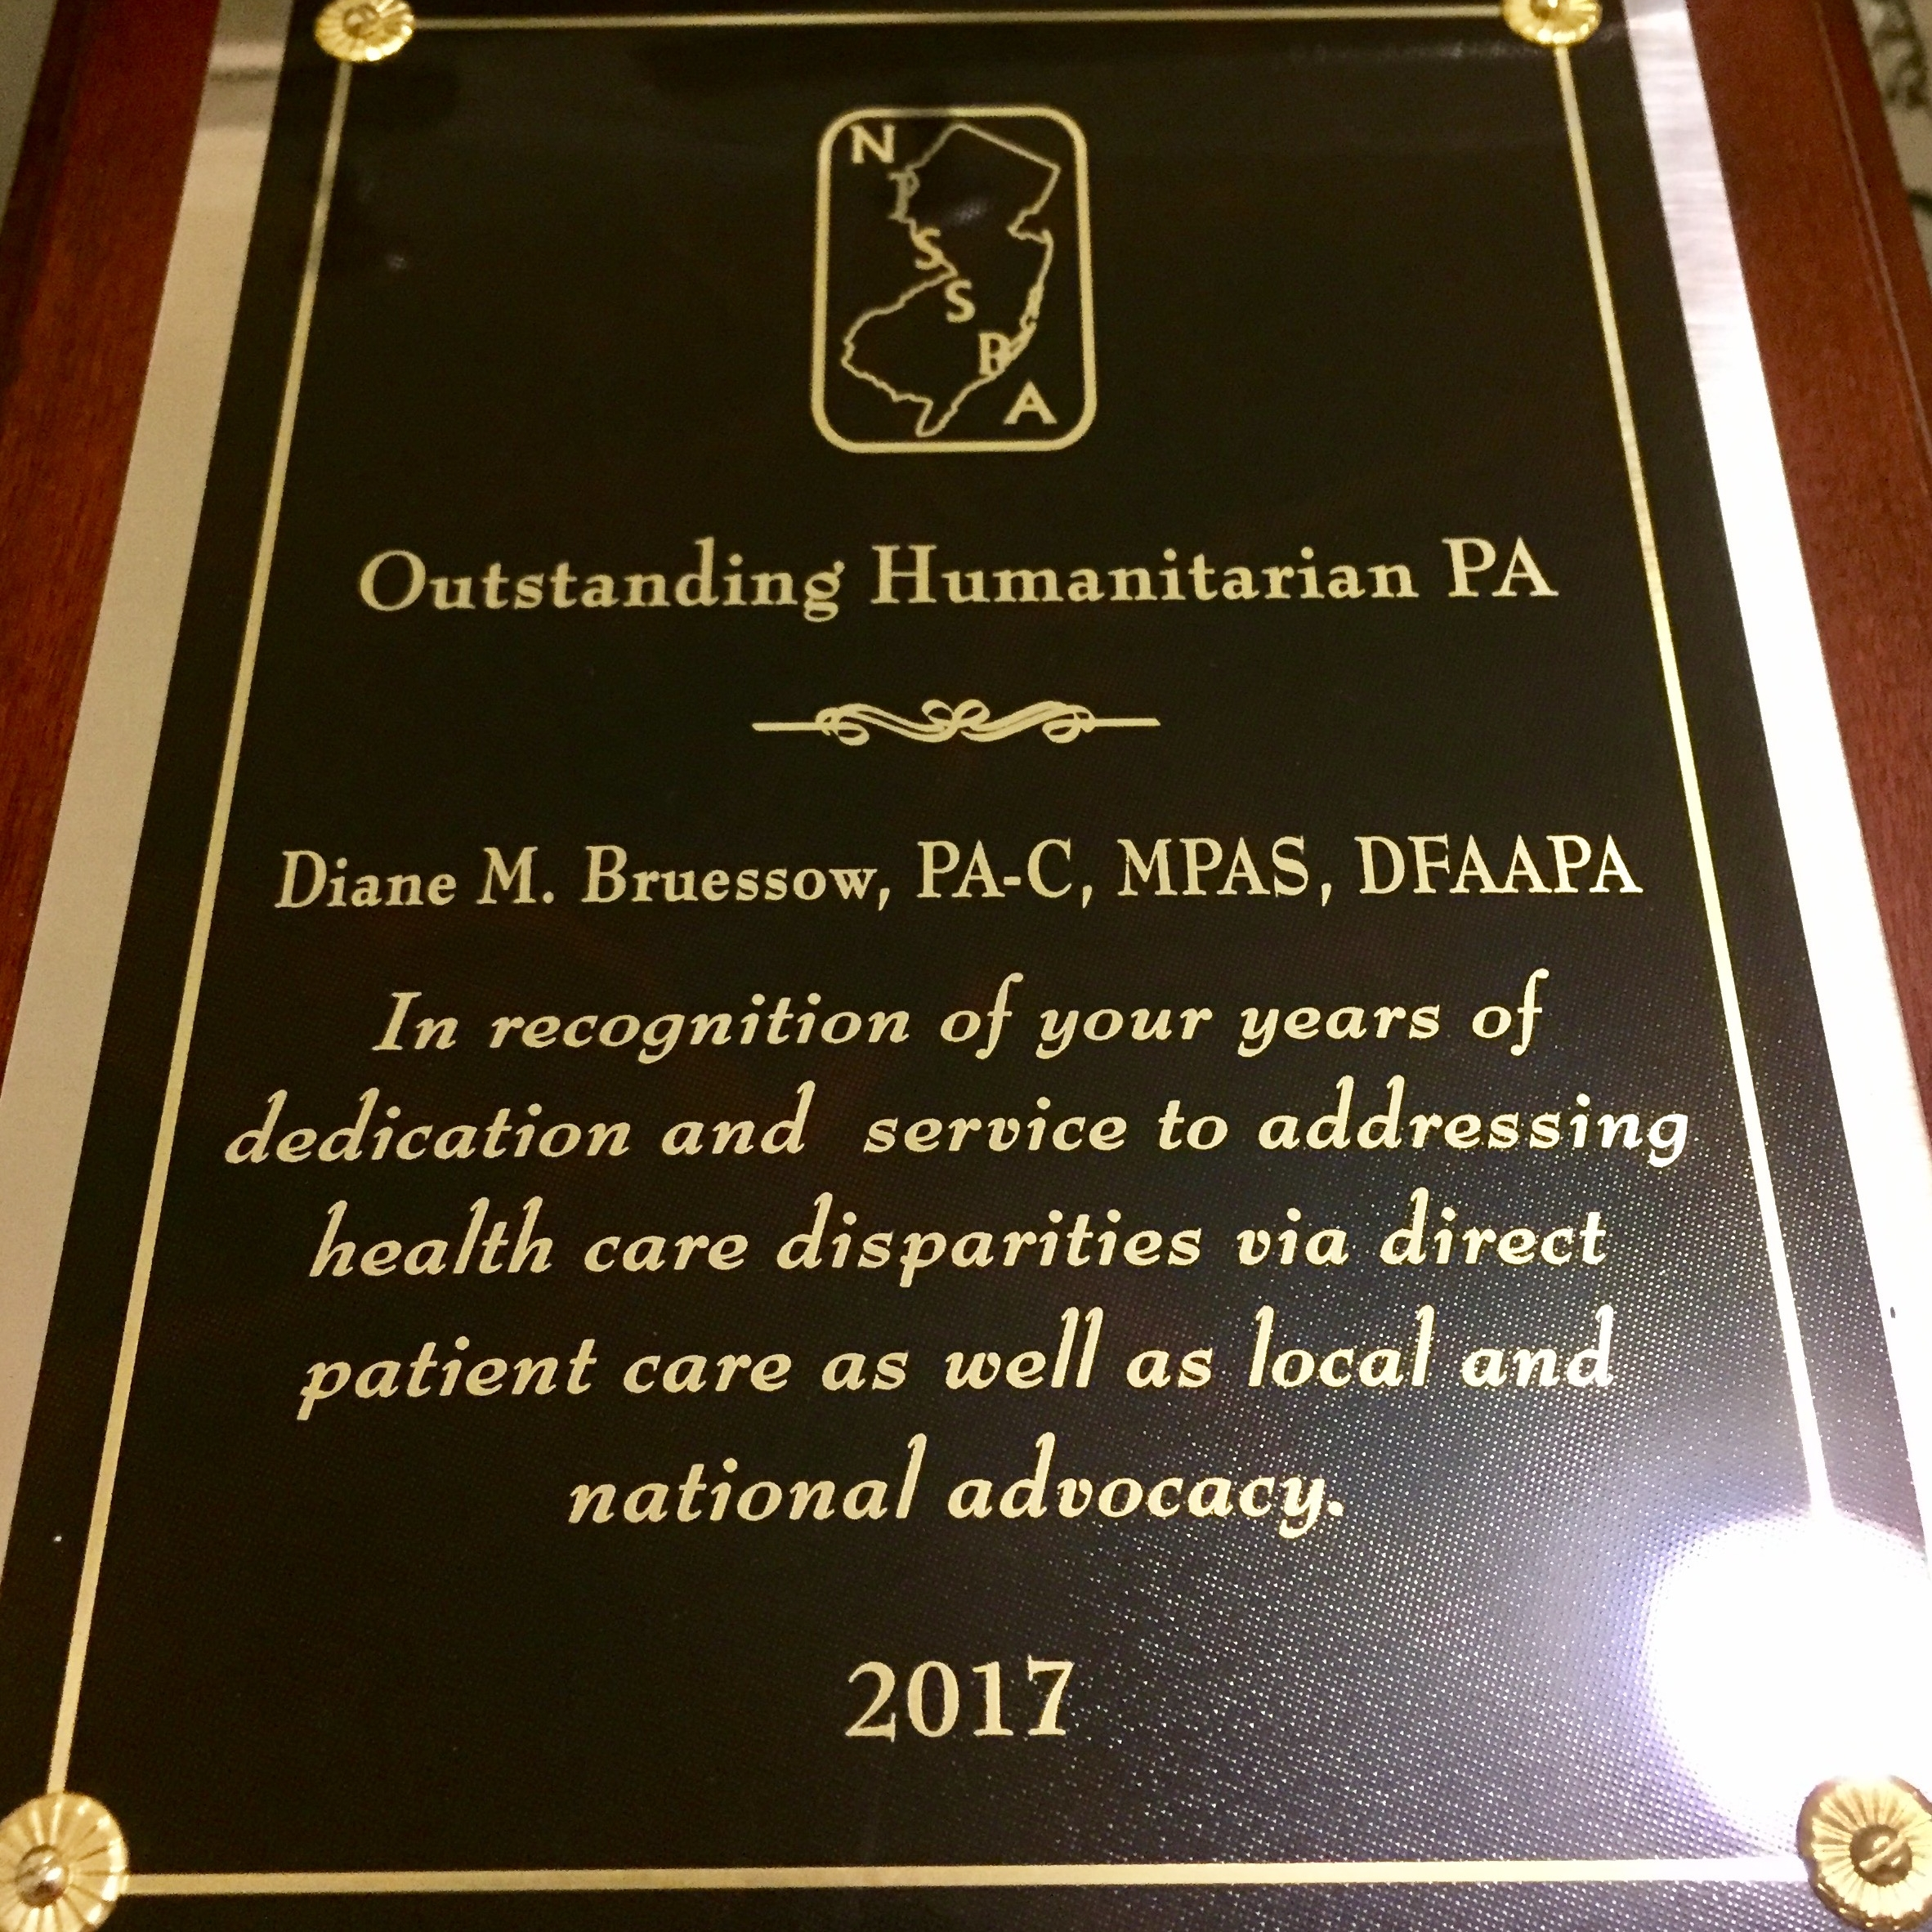 New Jersey State Society of PAs: Outstanding Humanitarian PA Award 2017